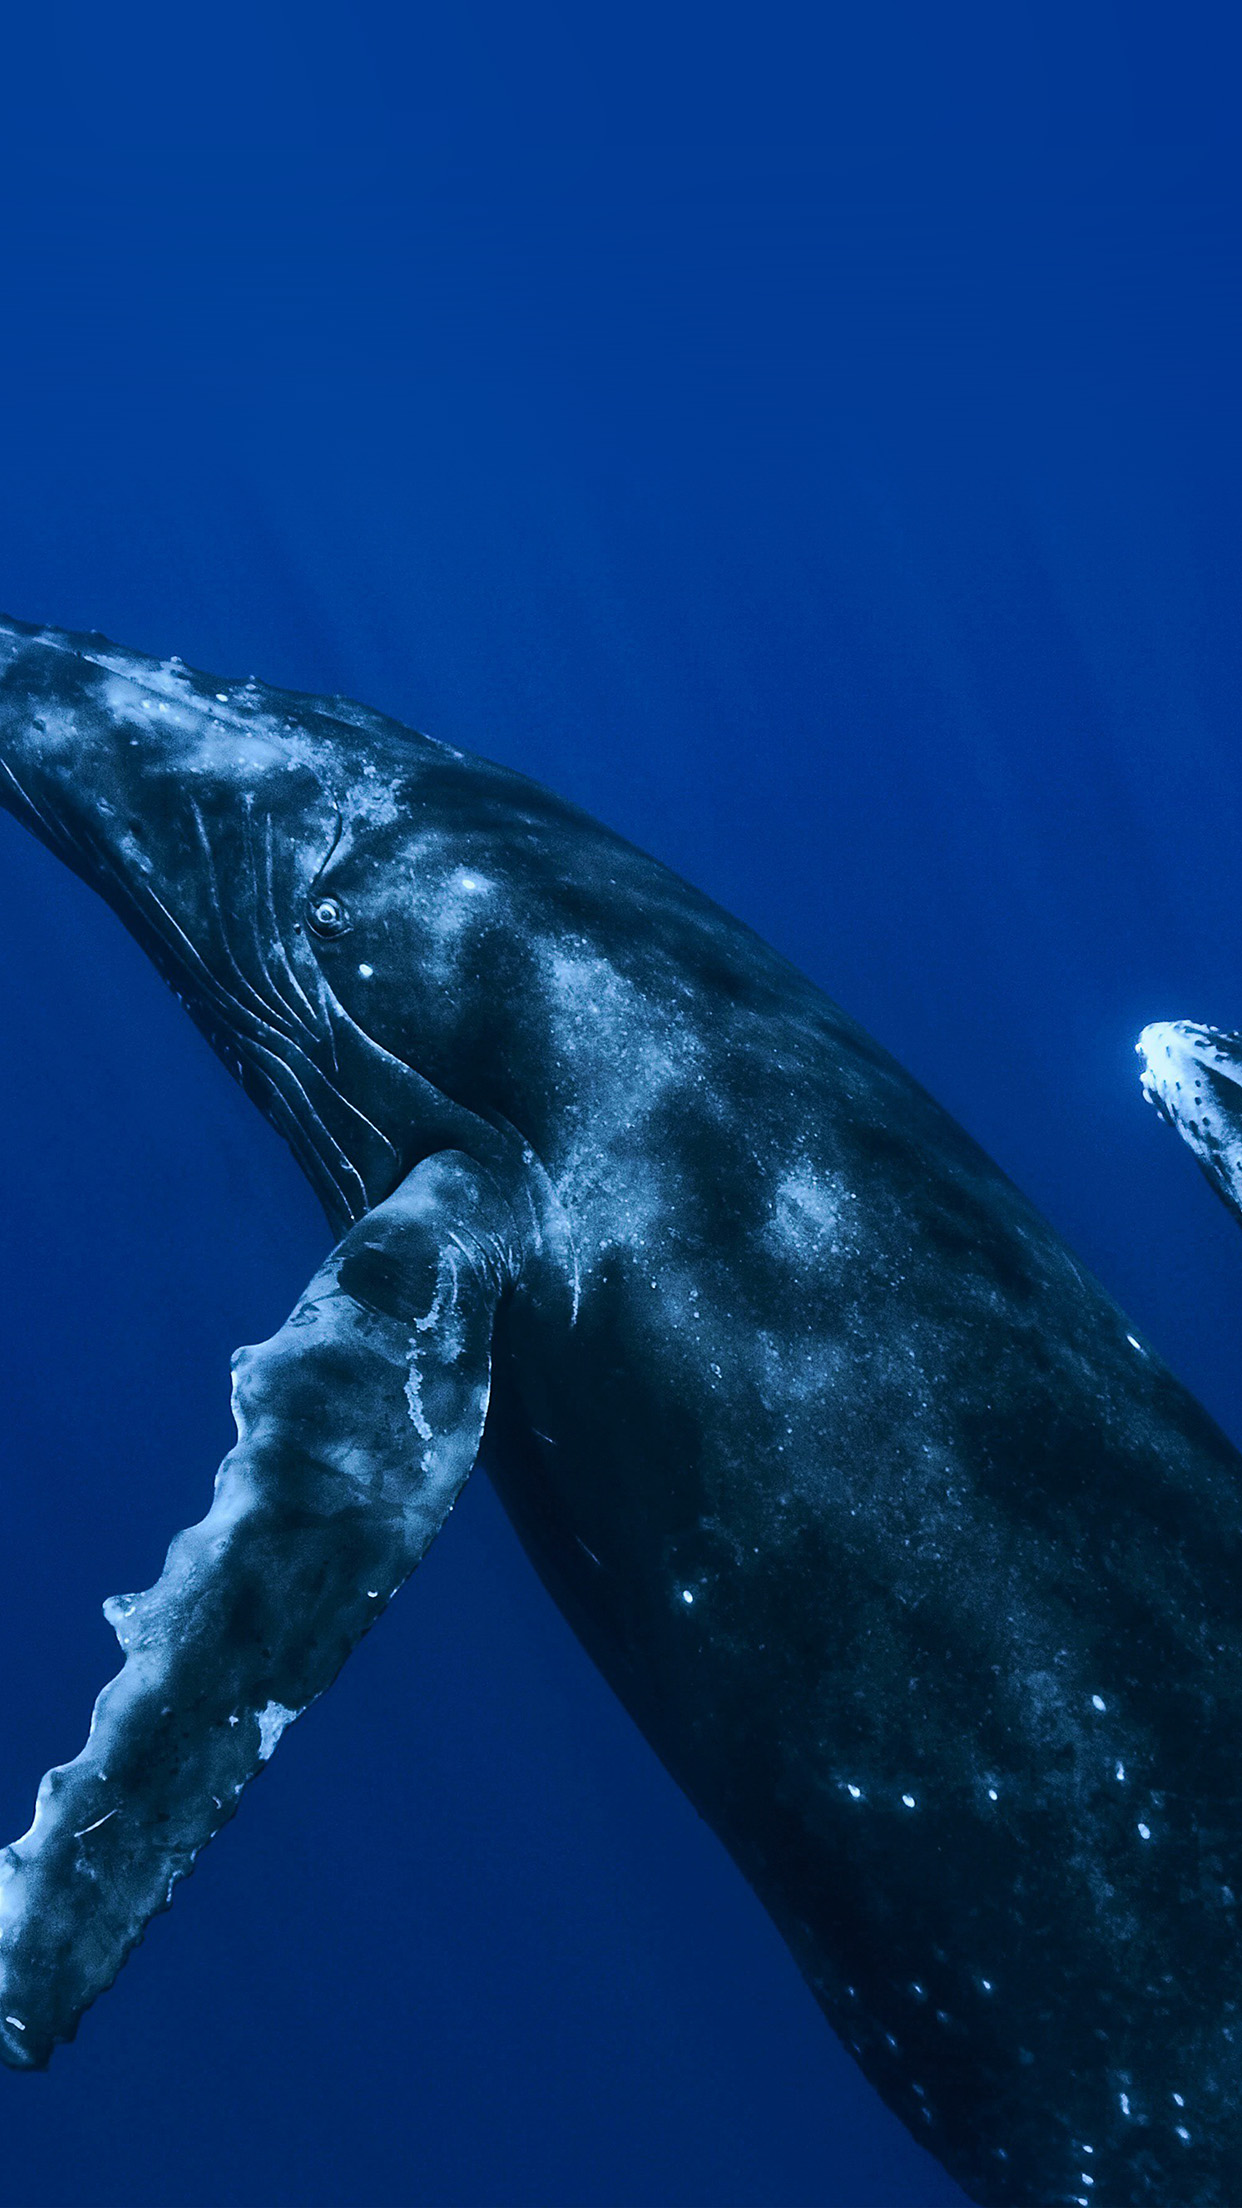 Iphone wallpaper vo62 whale blue art nature - Classic art wallpaper iphone 5 ...